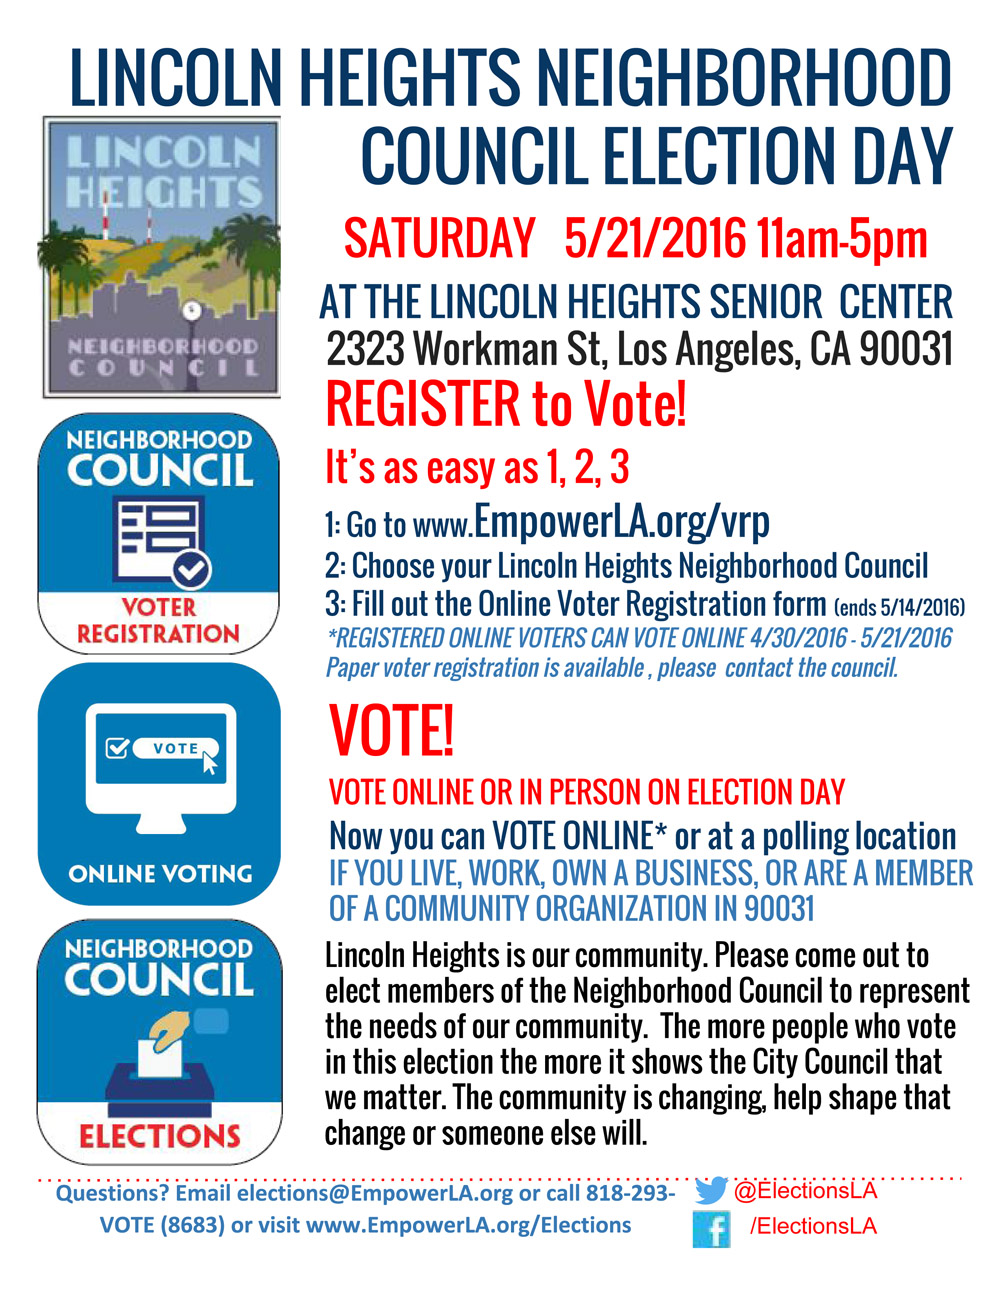 Elections flyer with time